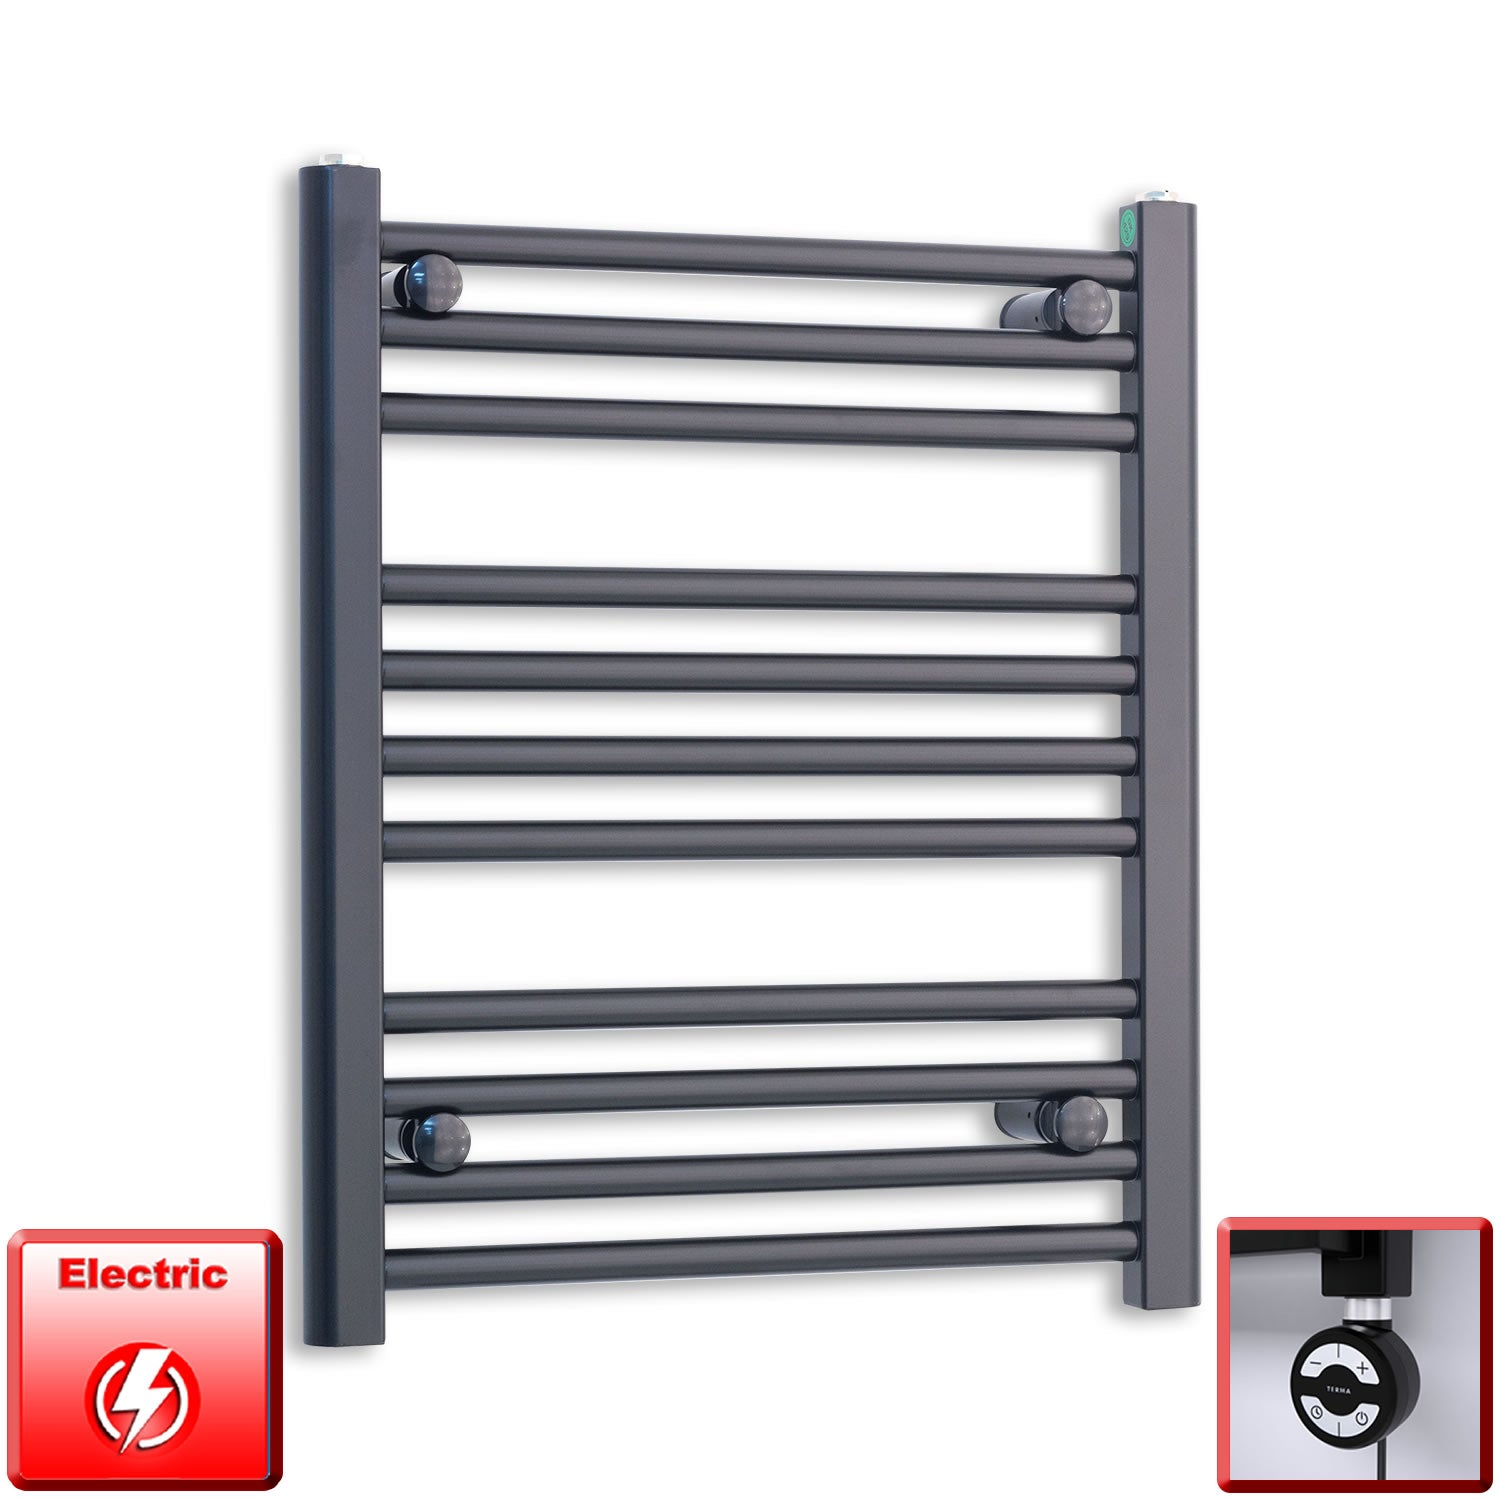 600mm Wide 600mm High Pre-Filled Black Electric Towel Rail Radiator With Thermostatic MOA Element